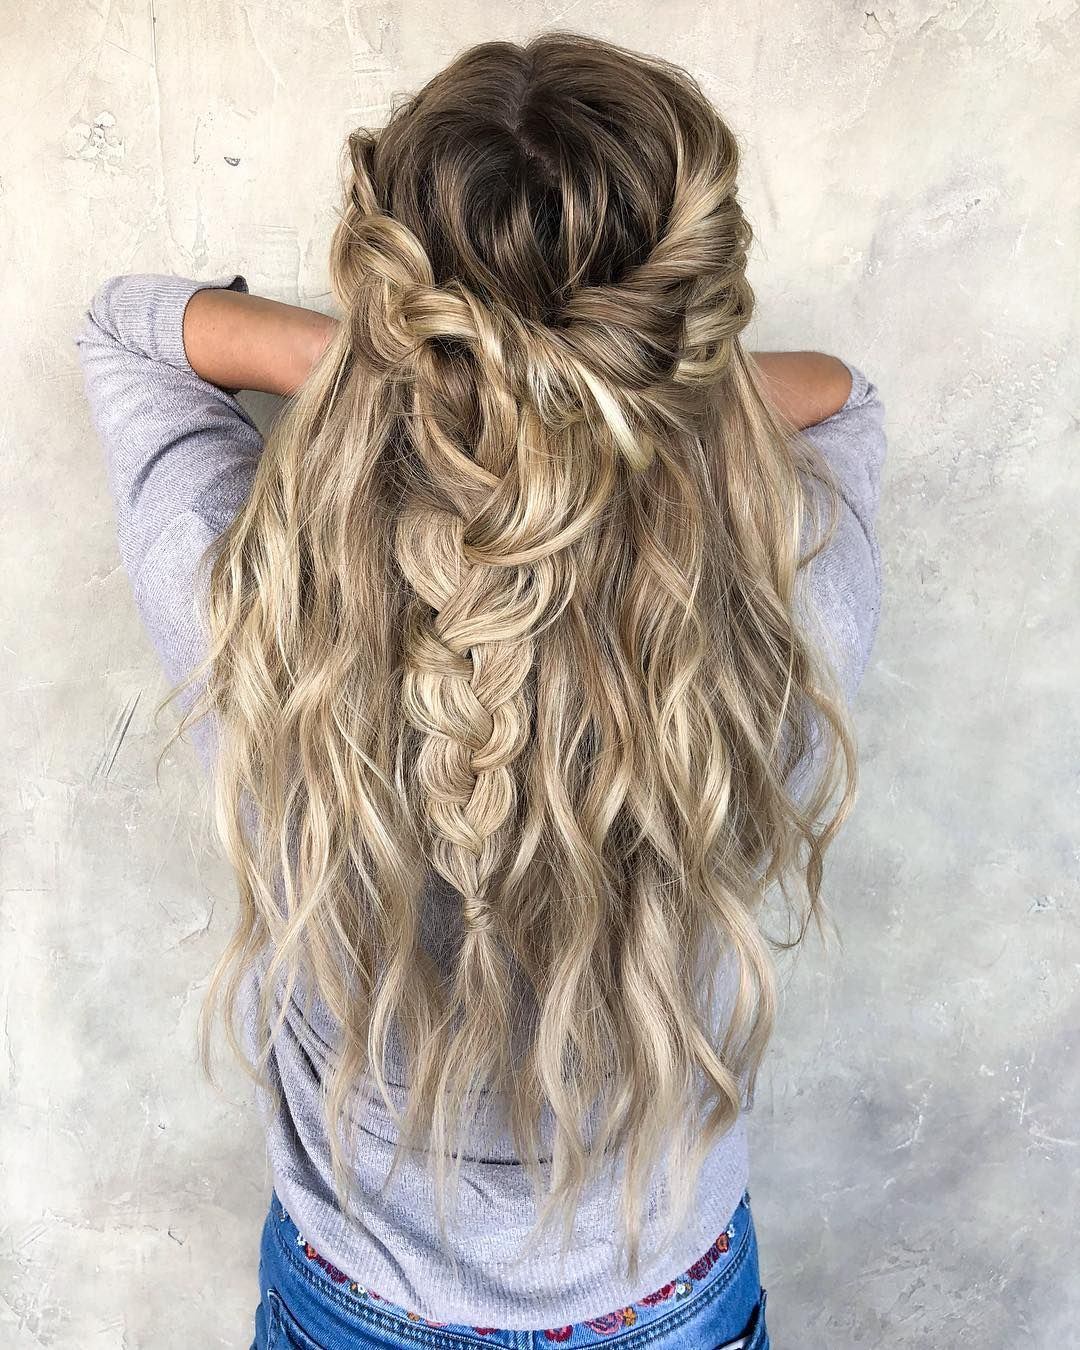 Coiffure Tresse Blonde Blonde Hair Braid Half Up Half Down Hairstyle Braids